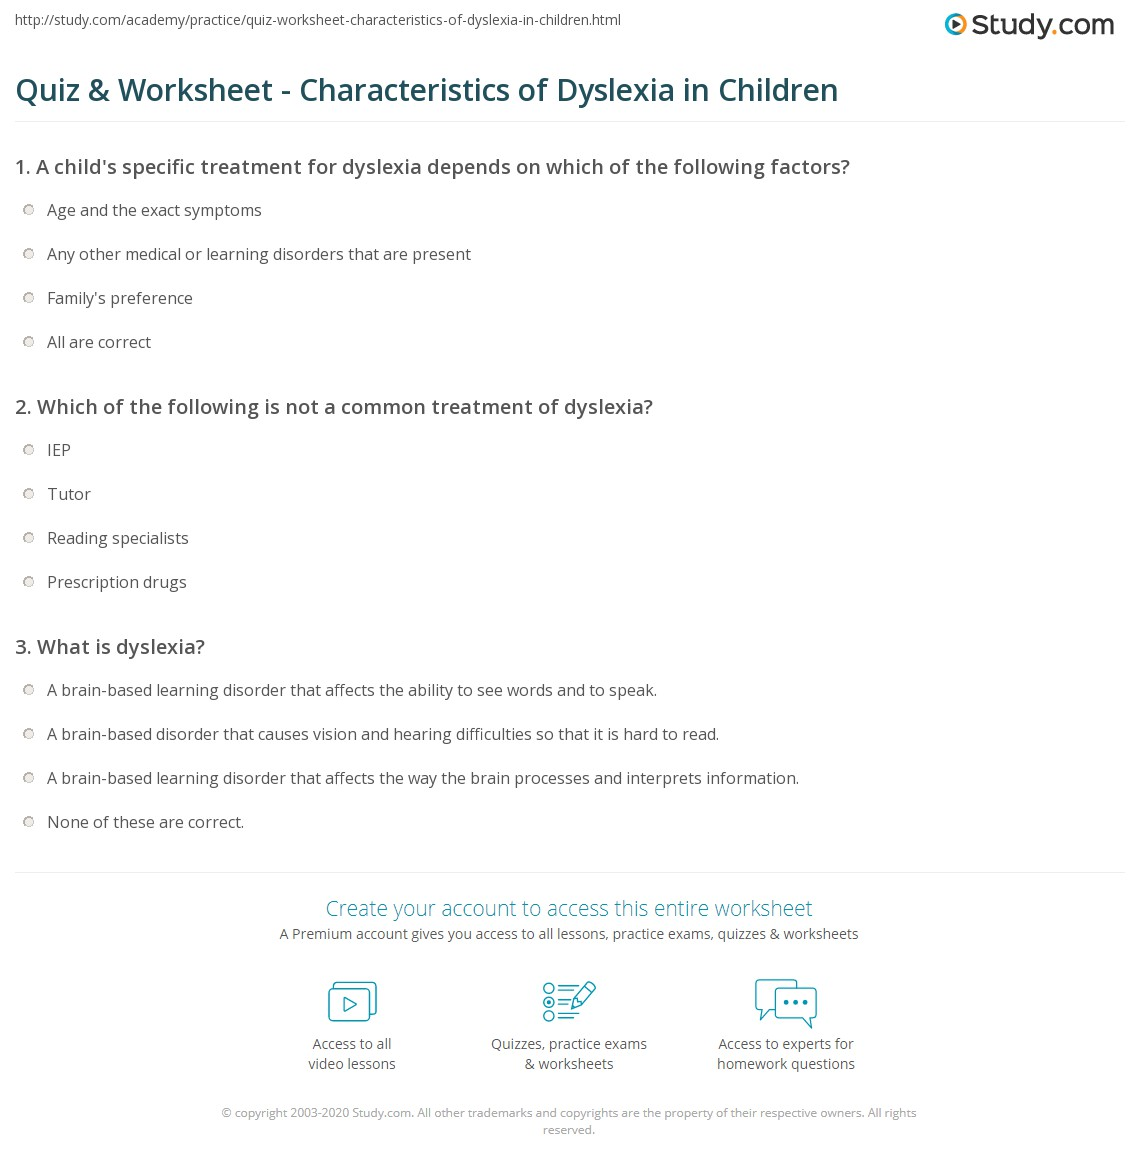 quiz worksheet characteristics of dyslexia in children. Black Bedroom Furniture Sets. Home Design Ideas